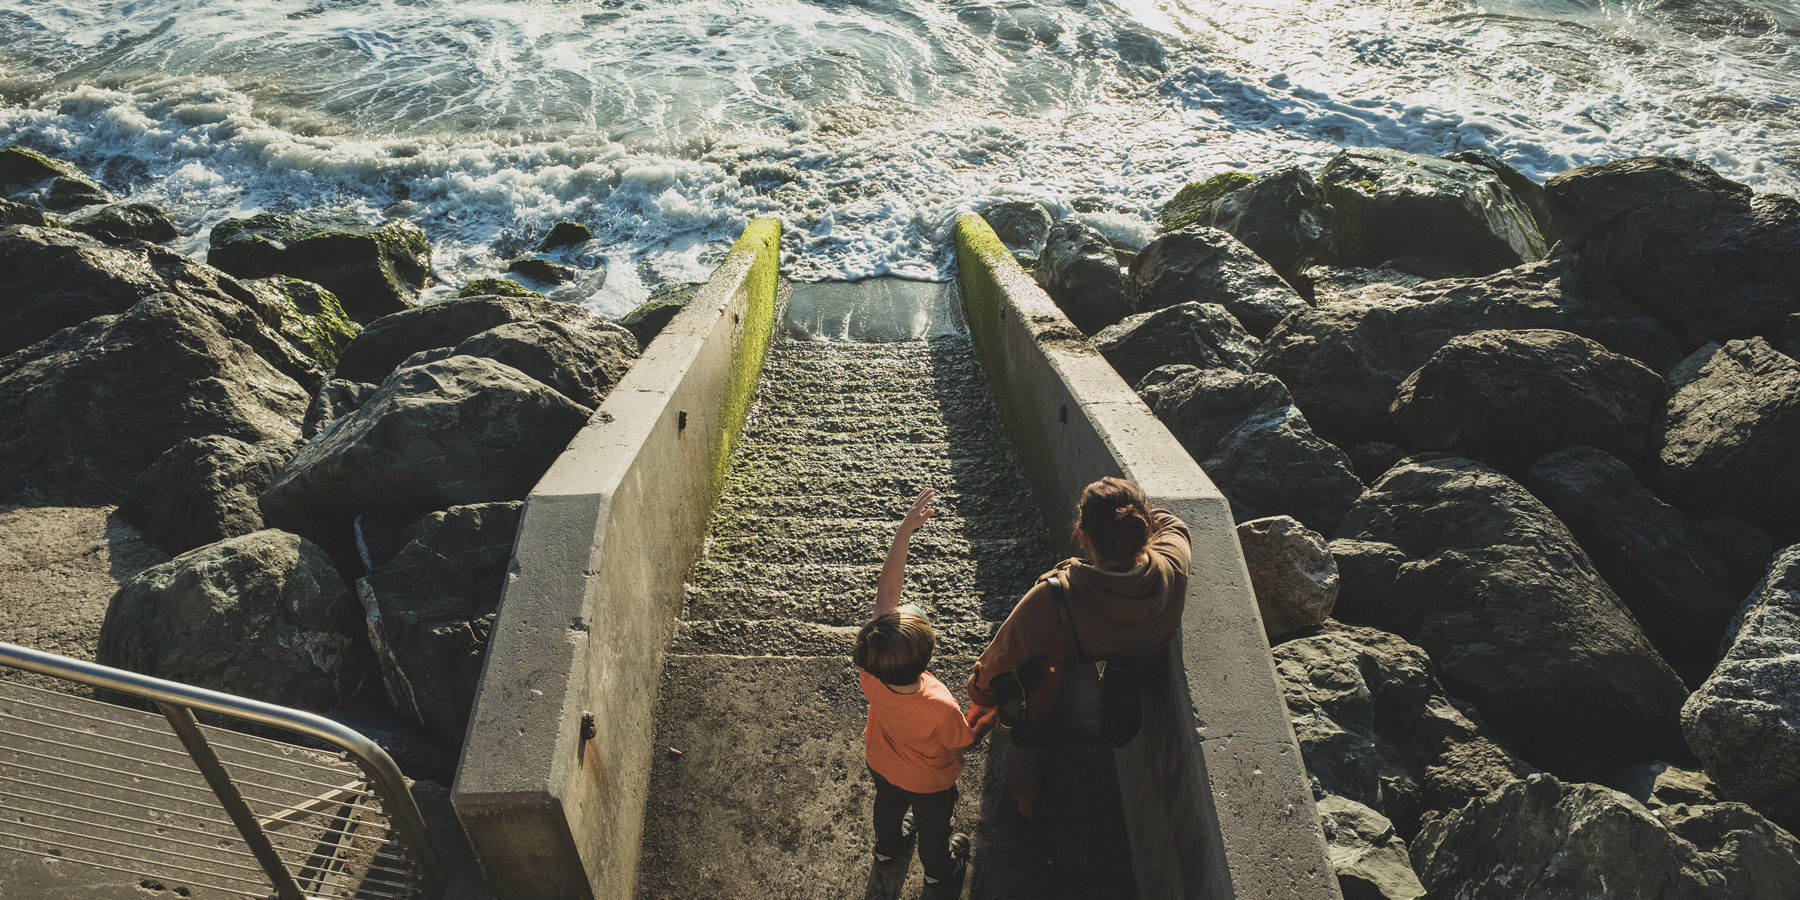 Two people stand on stairs that descend into the ocean.